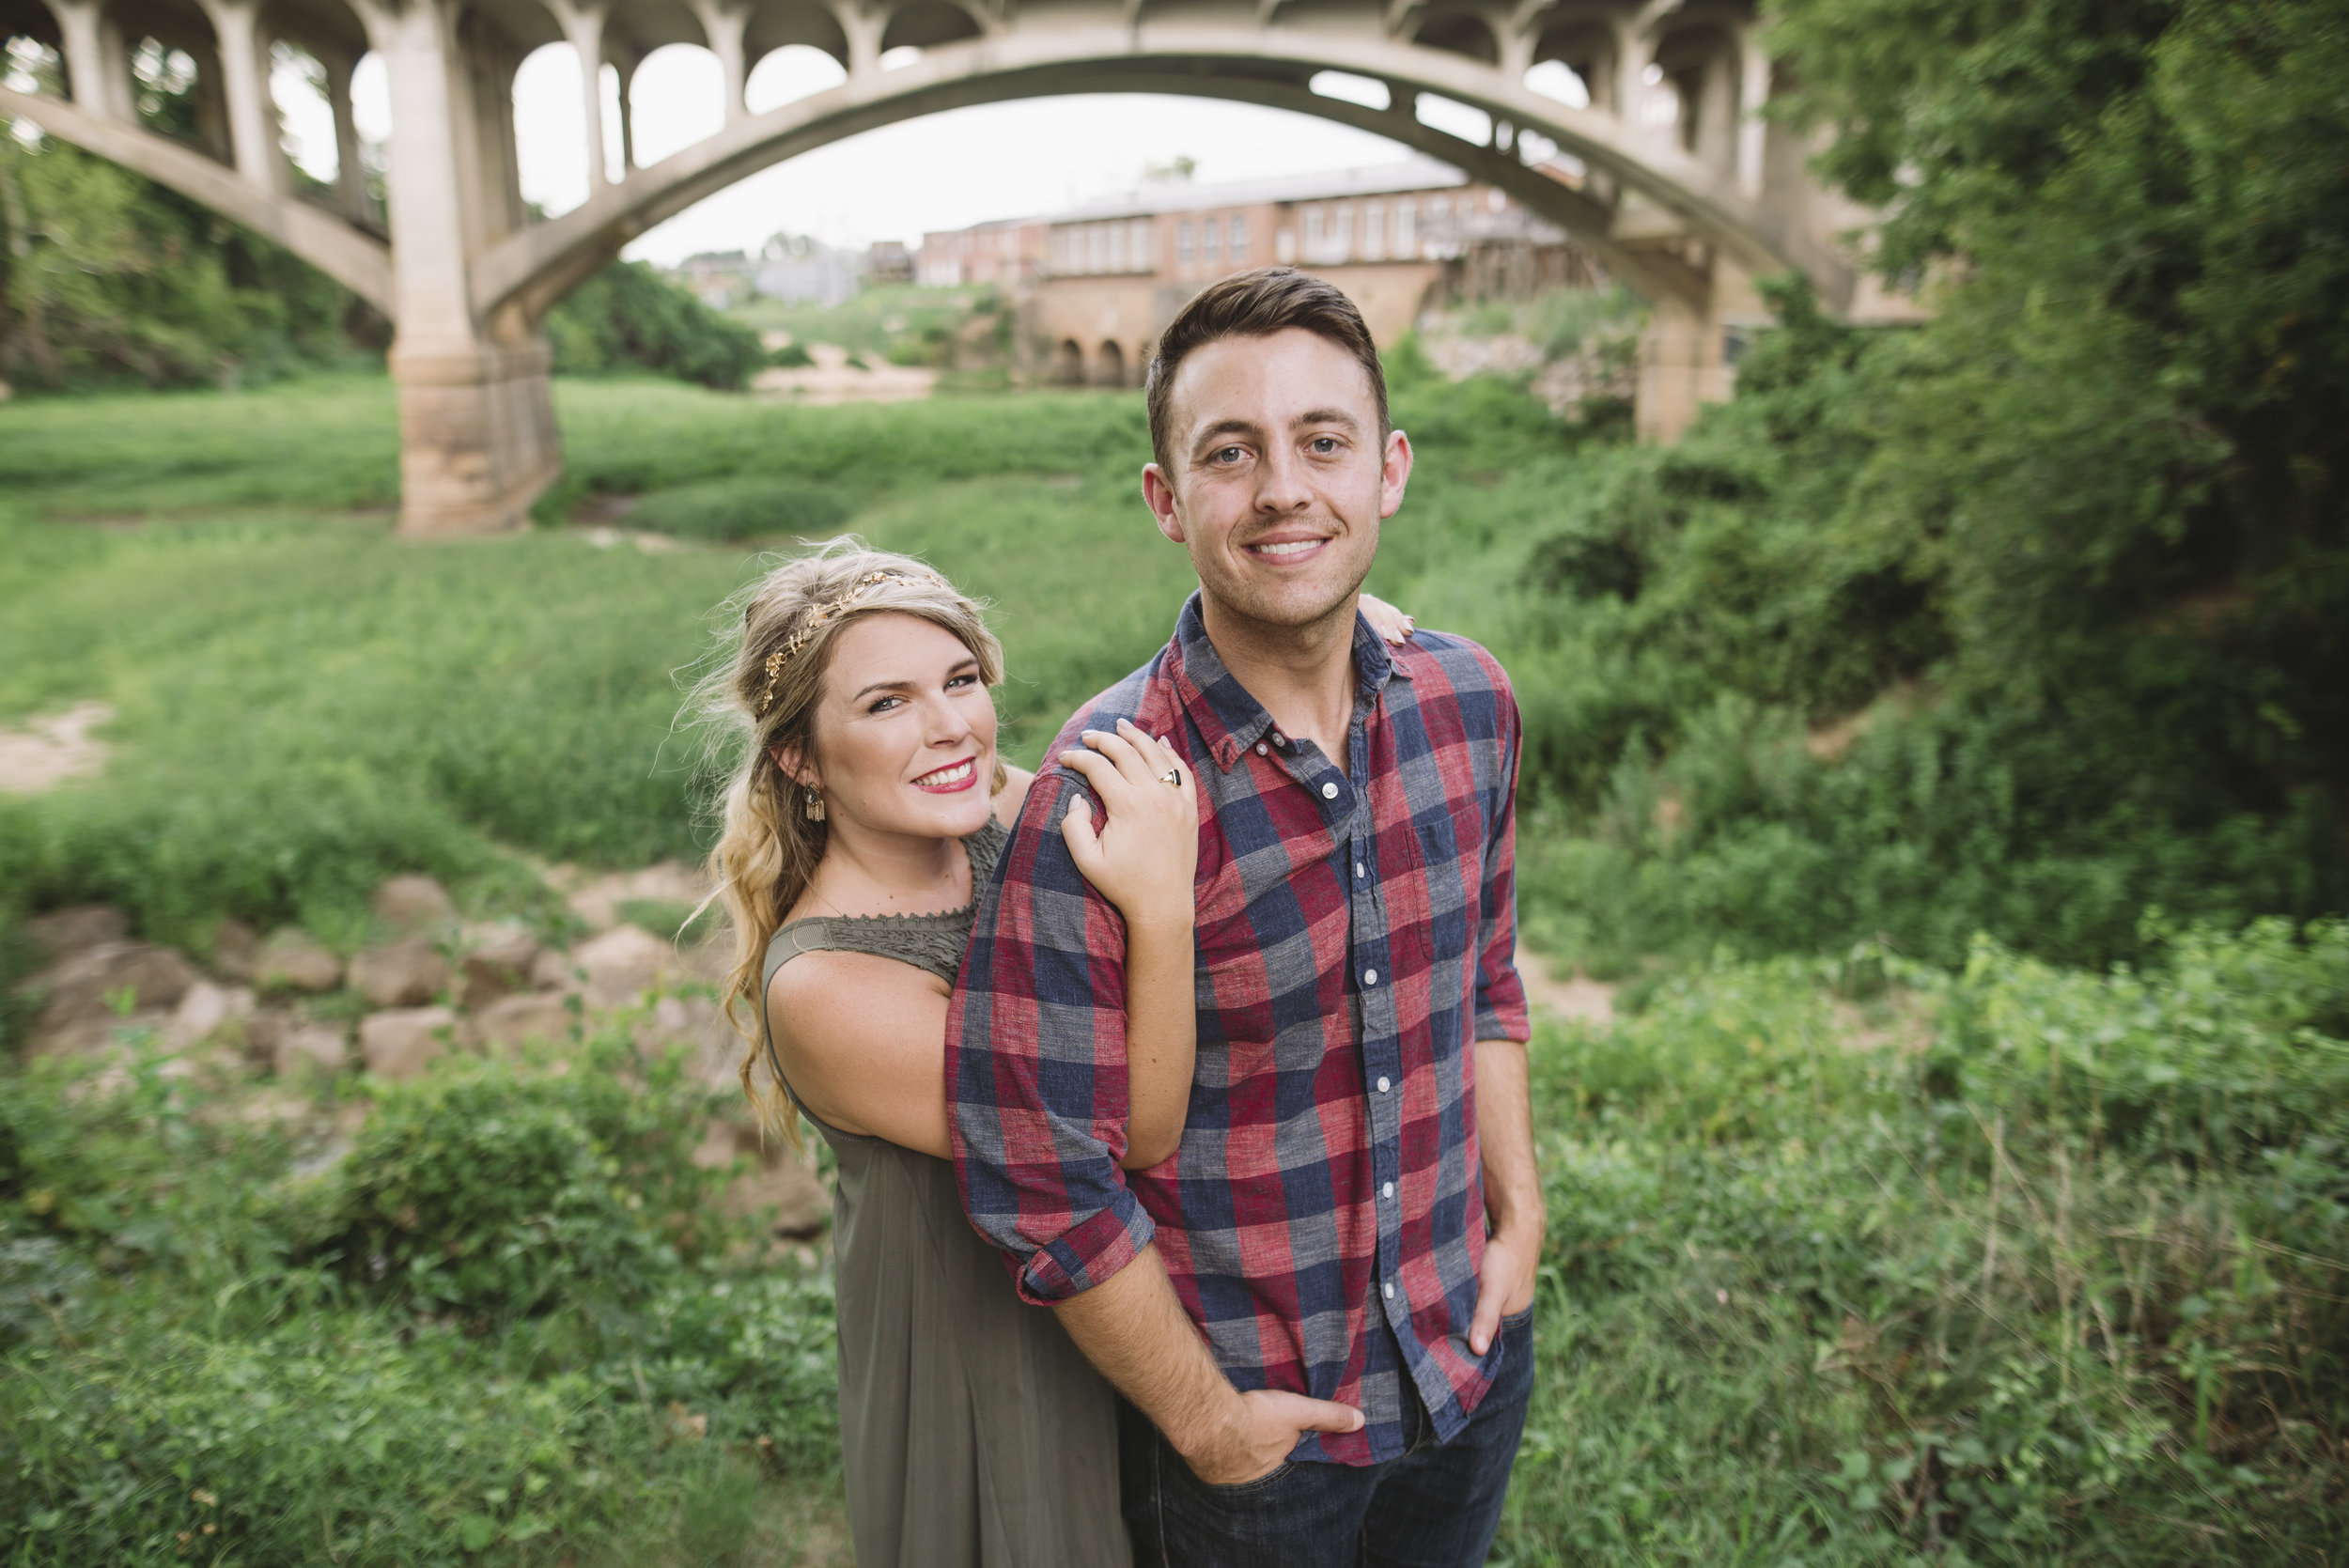 gervias street bridge engagement session